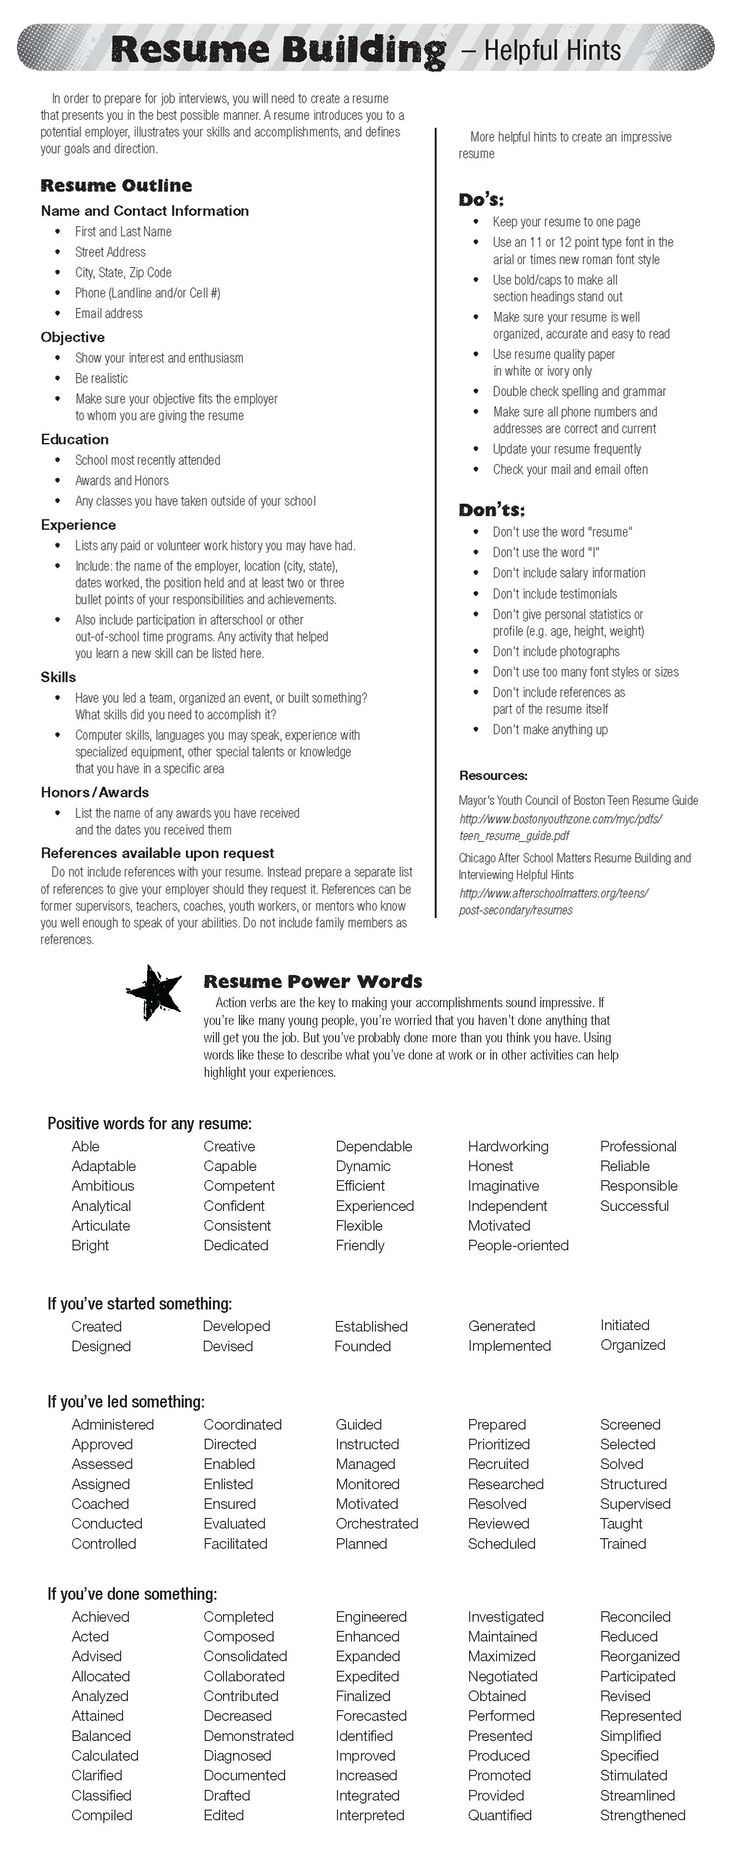 Opposenewapstandardsus  Picturesque  Ideas About Resume On Pinterest  Cv Format Resume Cv And  With Inspiring  Ideas About Resume On Pinterest  Cv Format Resume Cv And Resume Templates With Agreeable Resume For Hostess Also Whats A Cover Letter For A Resume In Addition Best Words To Use On Resume And Apartment Manager Resume As Well As Recent Grad Resume Additionally Medical Interpreter Resume From Pinterestcom With Opposenewapstandardsus  Inspiring  Ideas About Resume On Pinterest  Cv Format Resume Cv And  With Agreeable  Ideas About Resume On Pinterest  Cv Format Resume Cv And Resume Templates And Picturesque Resume For Hostess Also Whats A Cover Letter For A Resume In Addition Best Words To Use On Resume From Pinterestcom